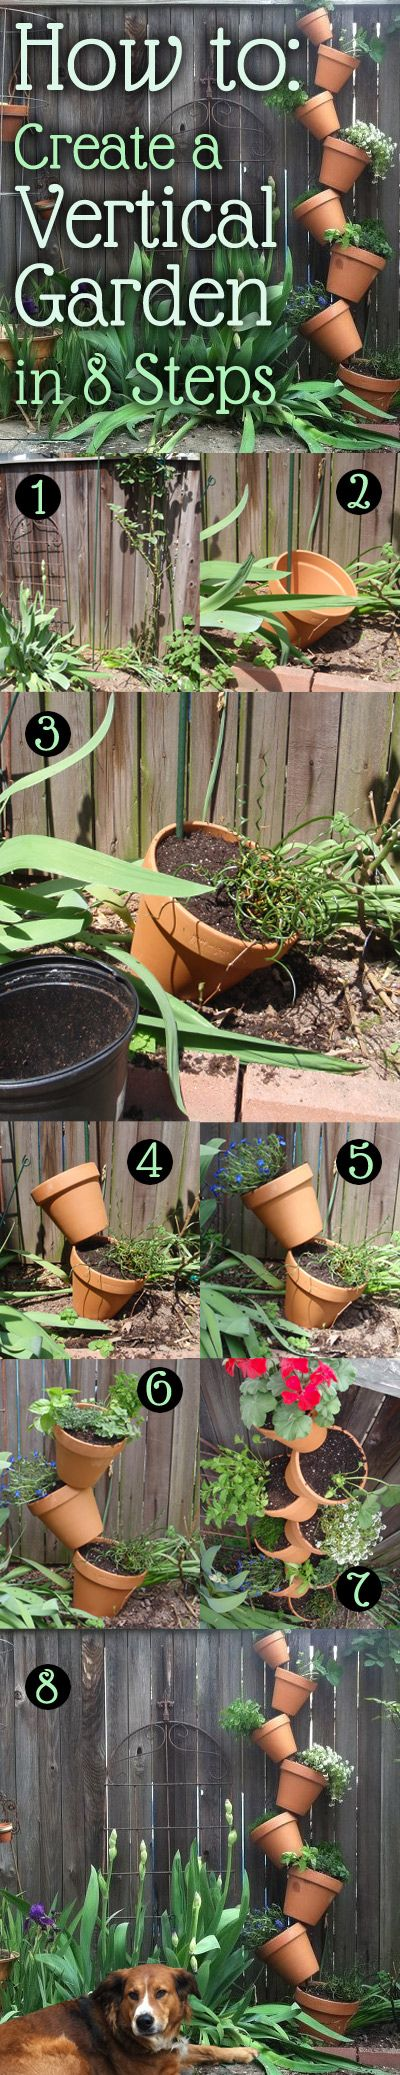 A step-by-step guide to creating an off-kilter patio garden.